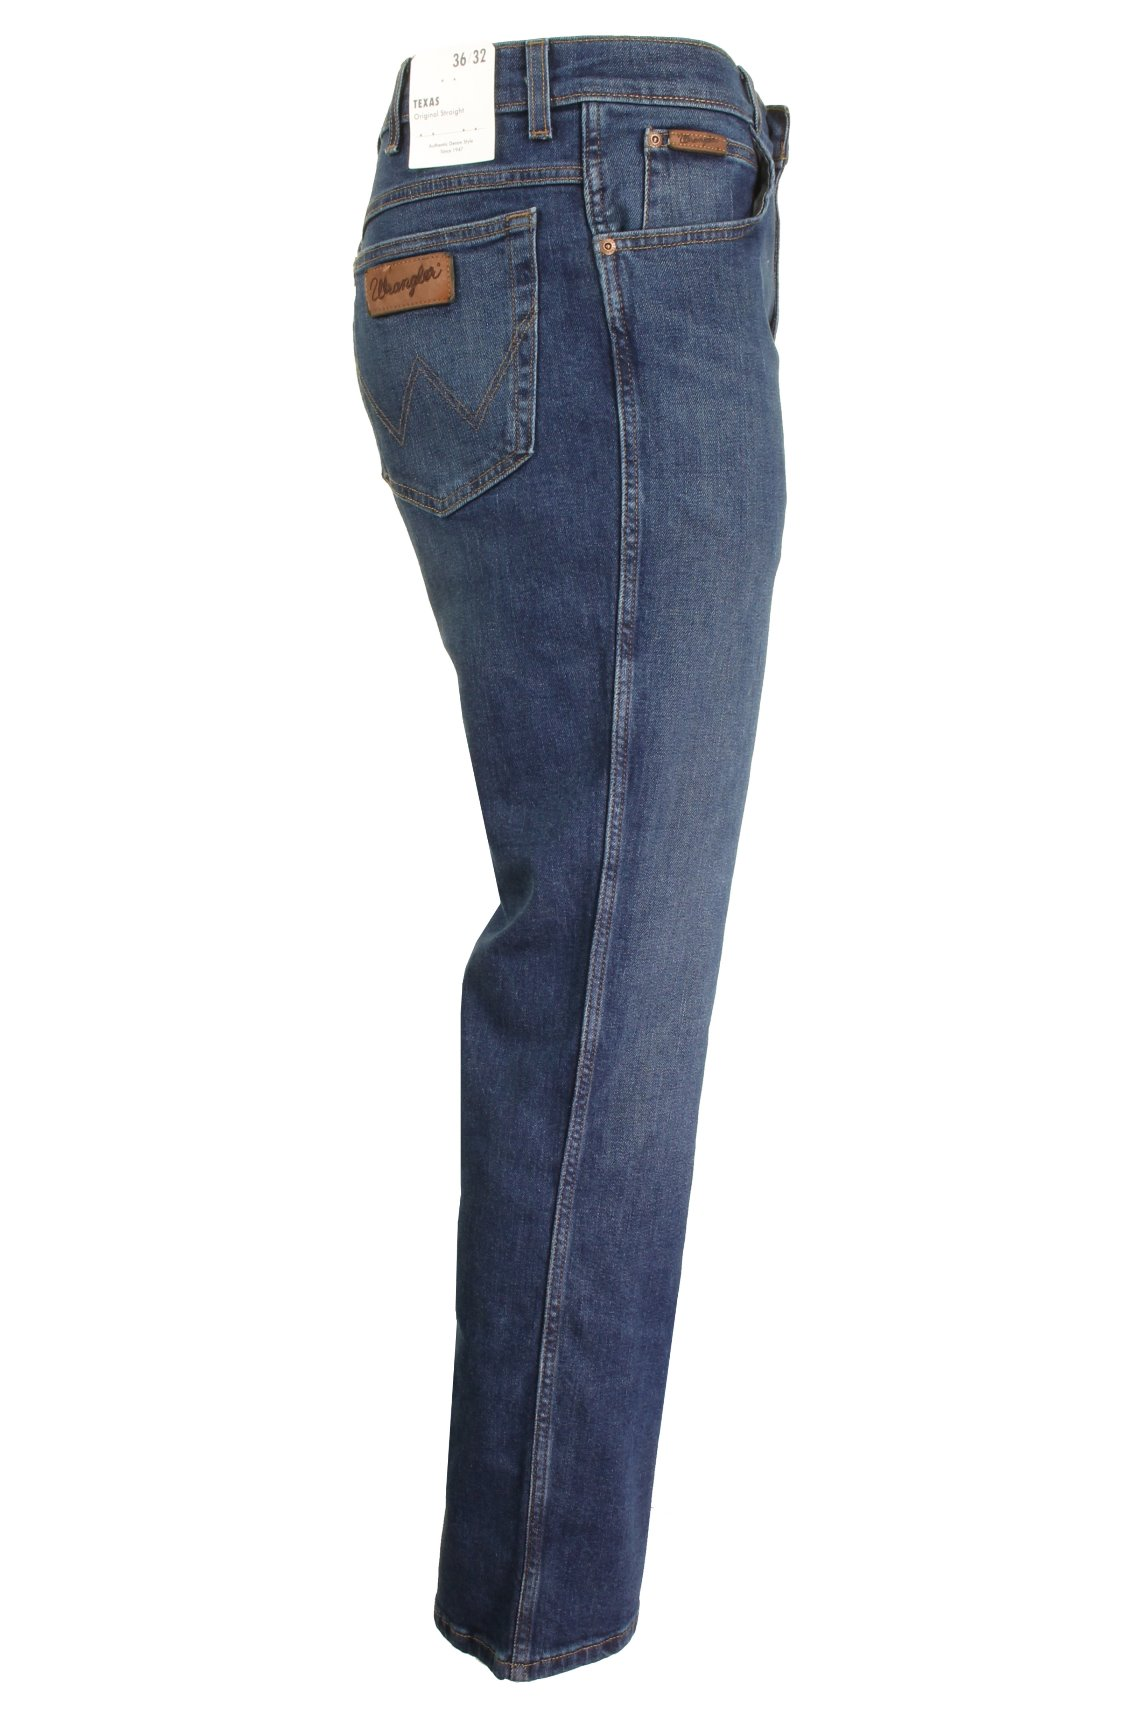 Mens-Wrangler-039-Texas-039-Jeans-Denim-Stretch-Original-Straight-Fit thumbnail 13